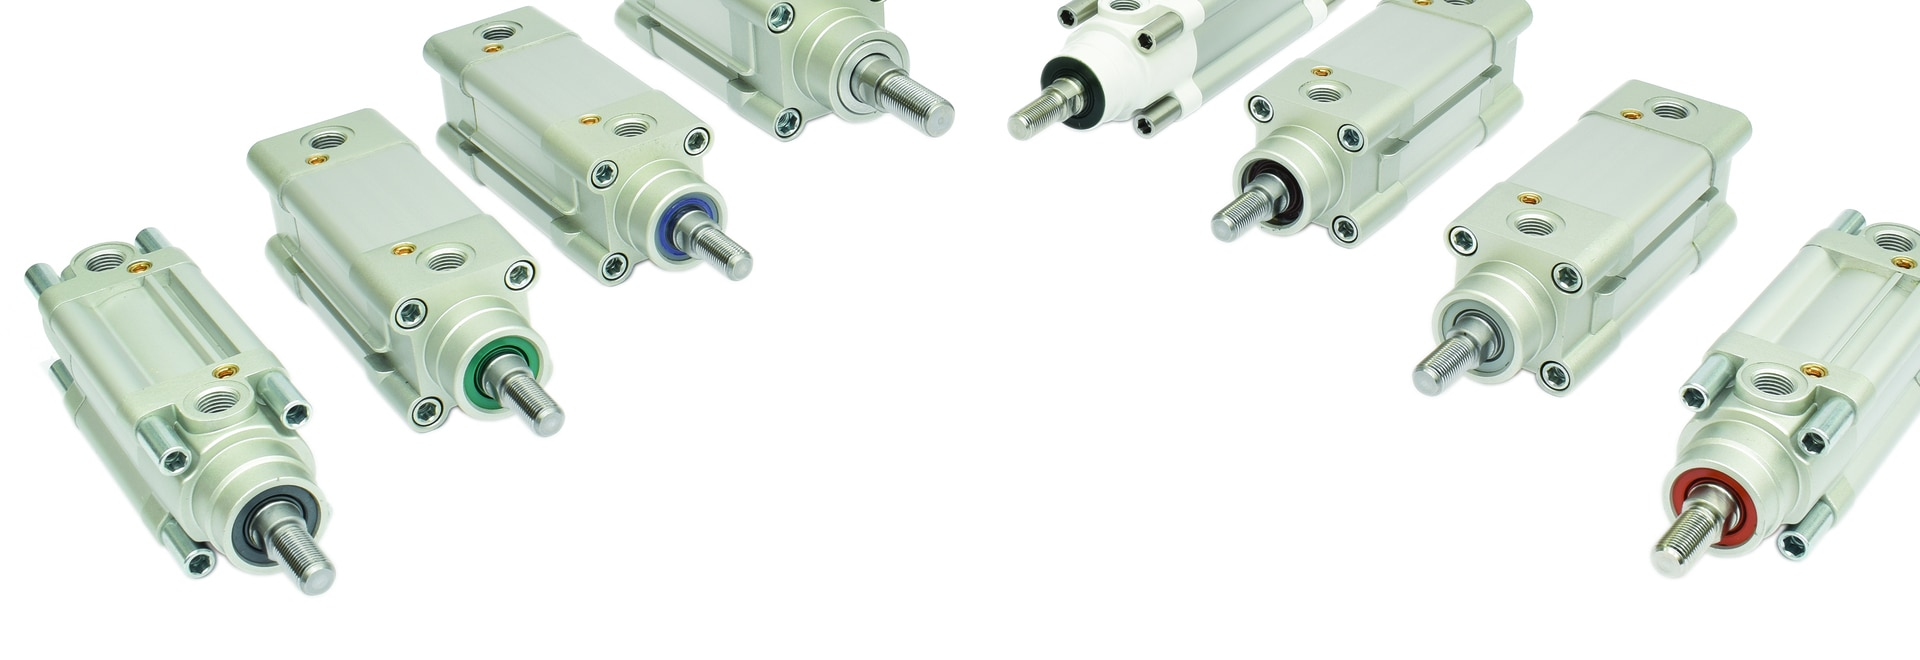 INNOVATIVE ROD SEALS IDEAL FOR ANY APPLICATION